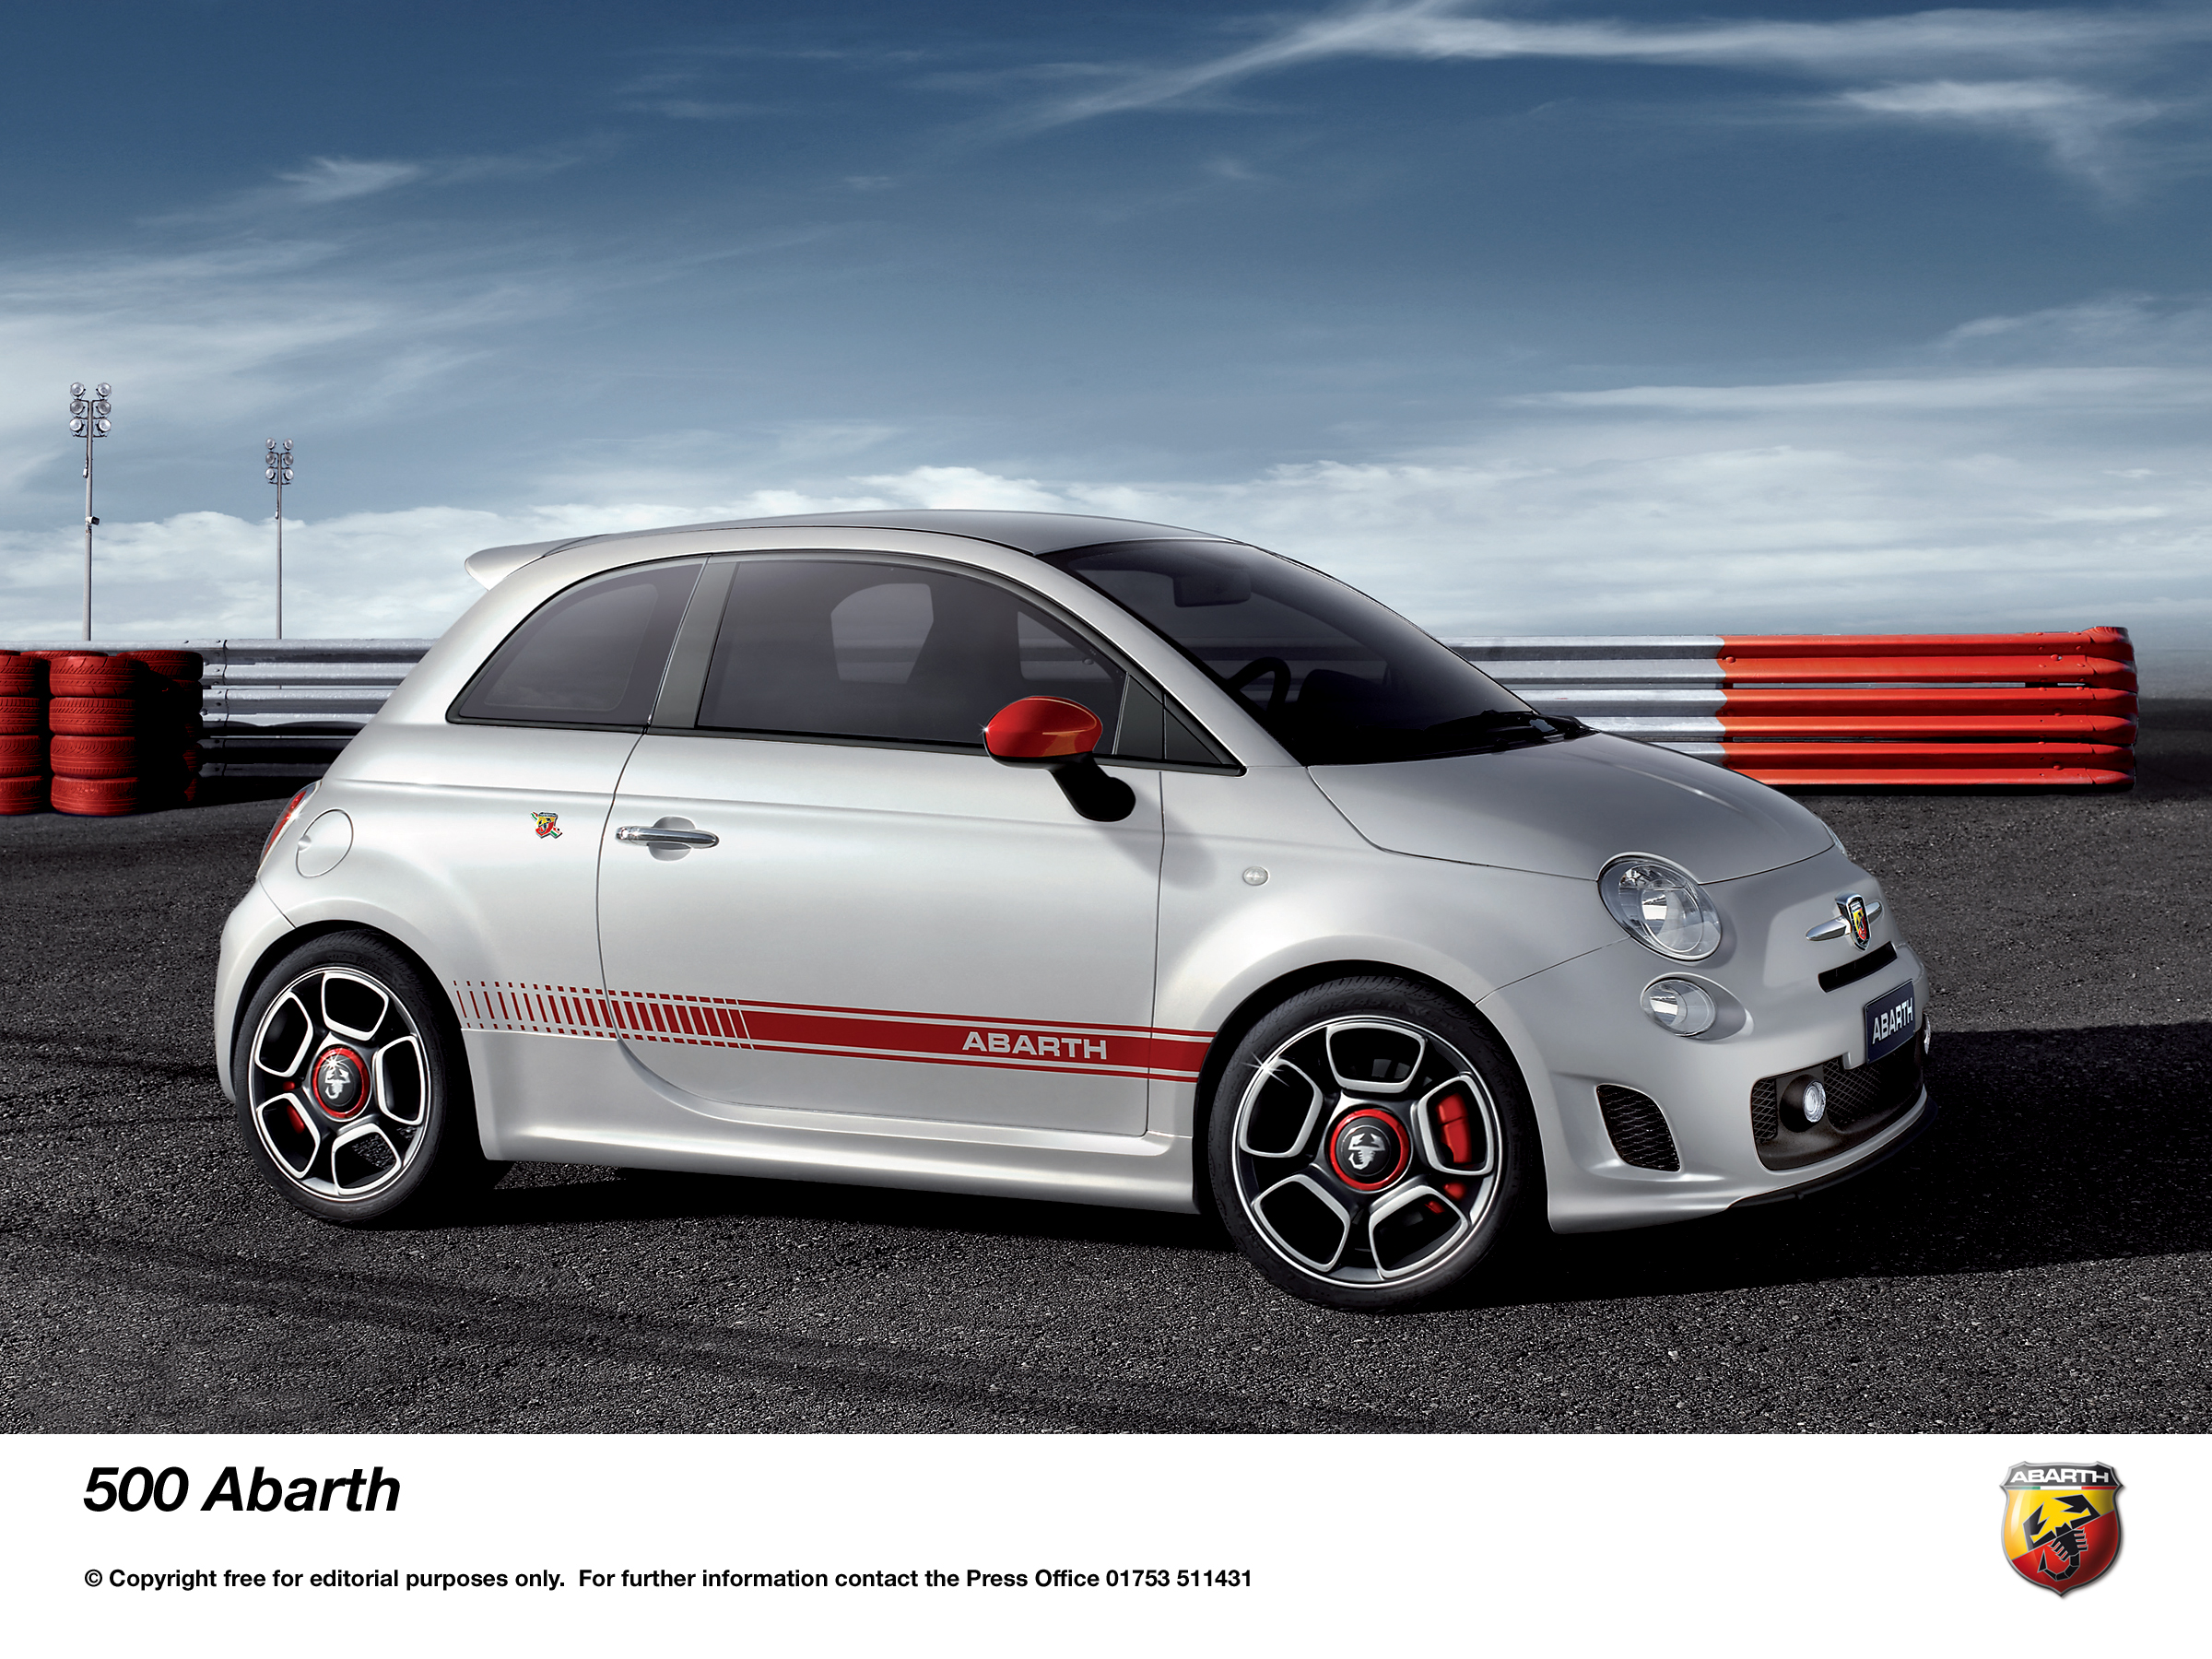 Johnston Chrysler Fiat >> NEW 500 ABARTH DEBUTS AT GENEVA - Press - Fiat Group Automobiles Press